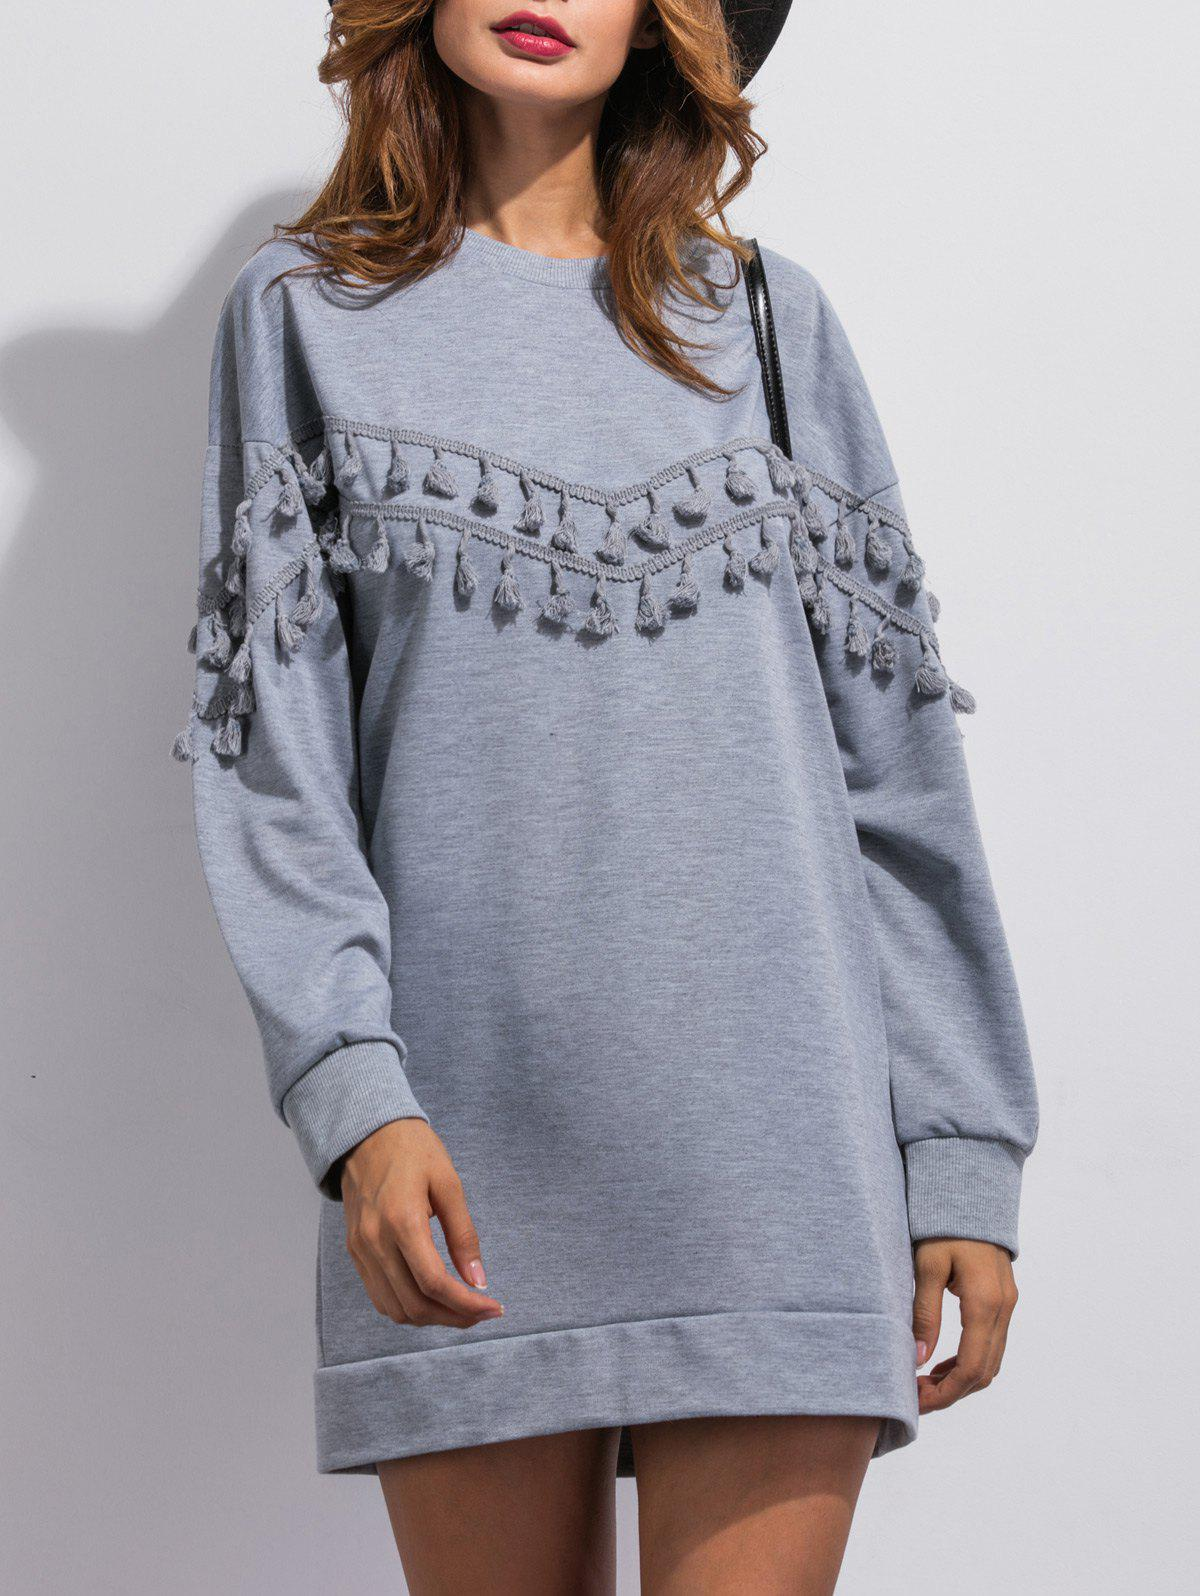 Round Neck Fringed Loose-Fitting Dress - GRAY S